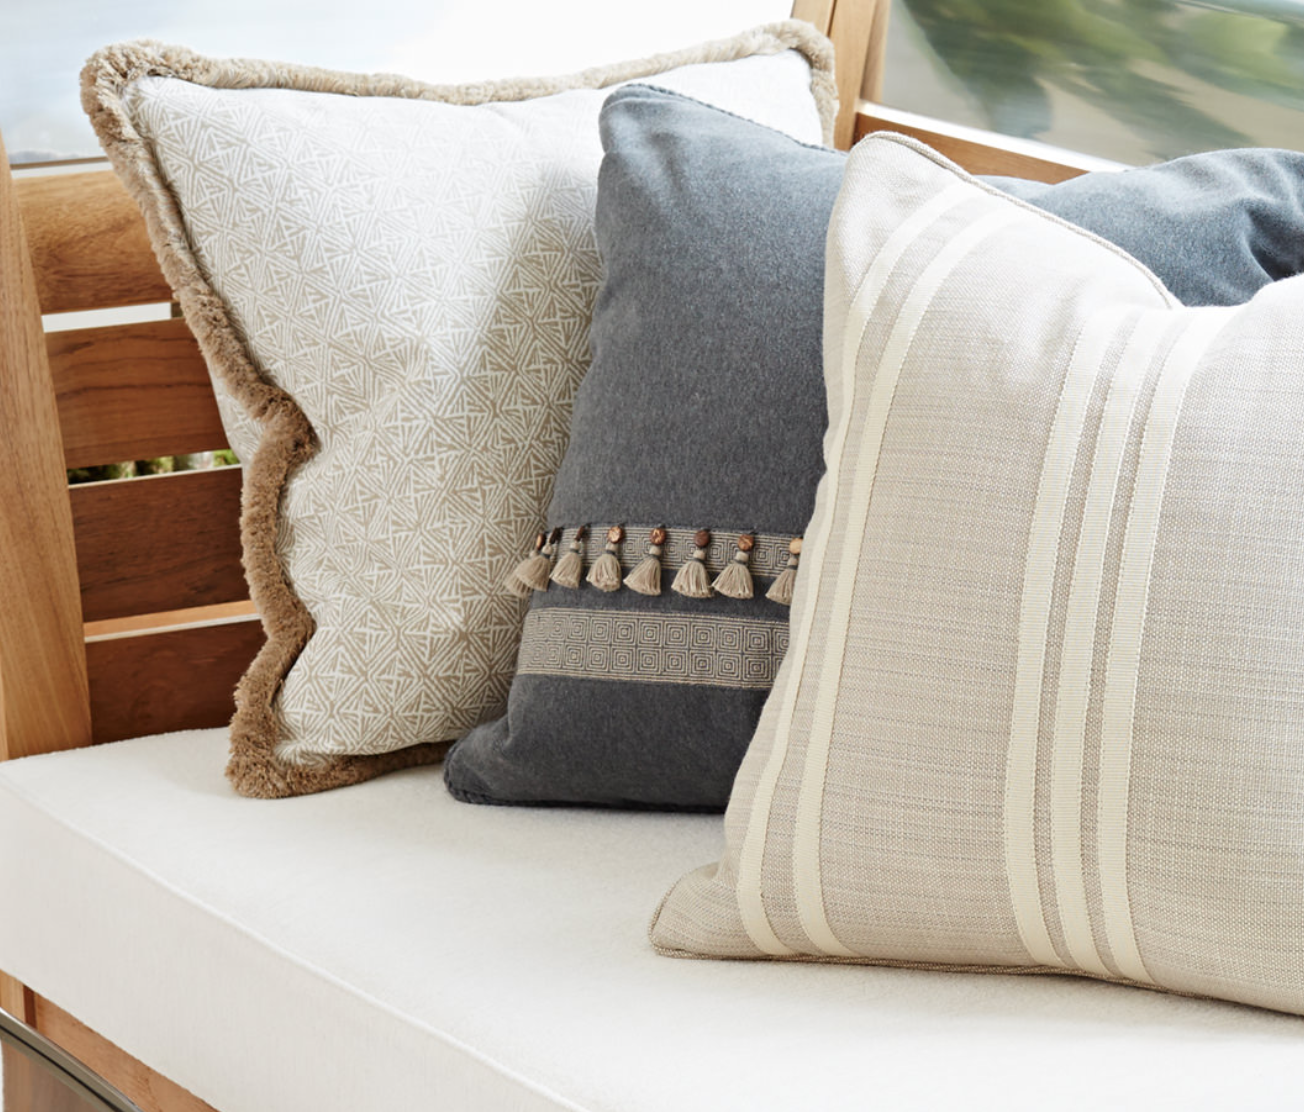 8. pillows made up with beautiful outdoor fabric give you a no-fuss soft place to land